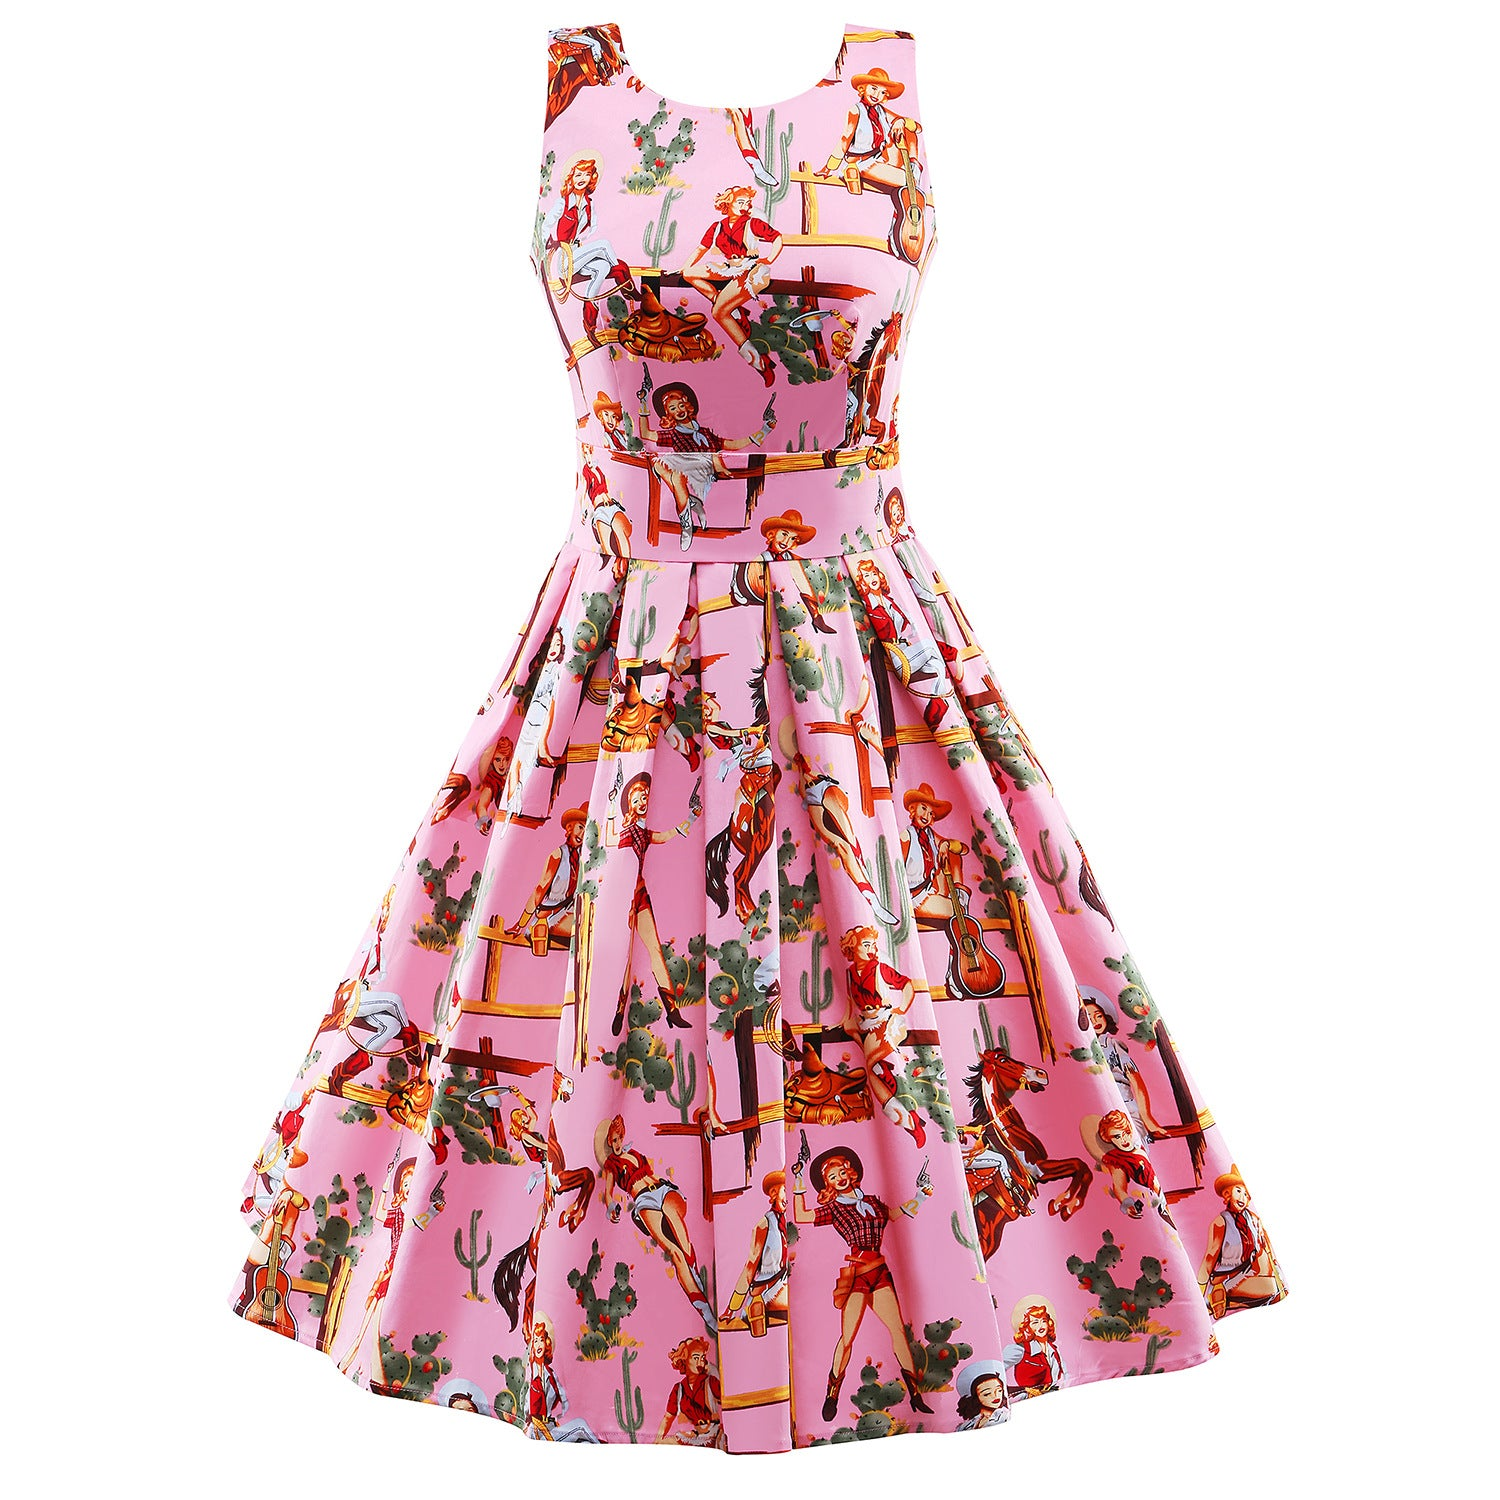 Cowgirl Rockabilly Dress